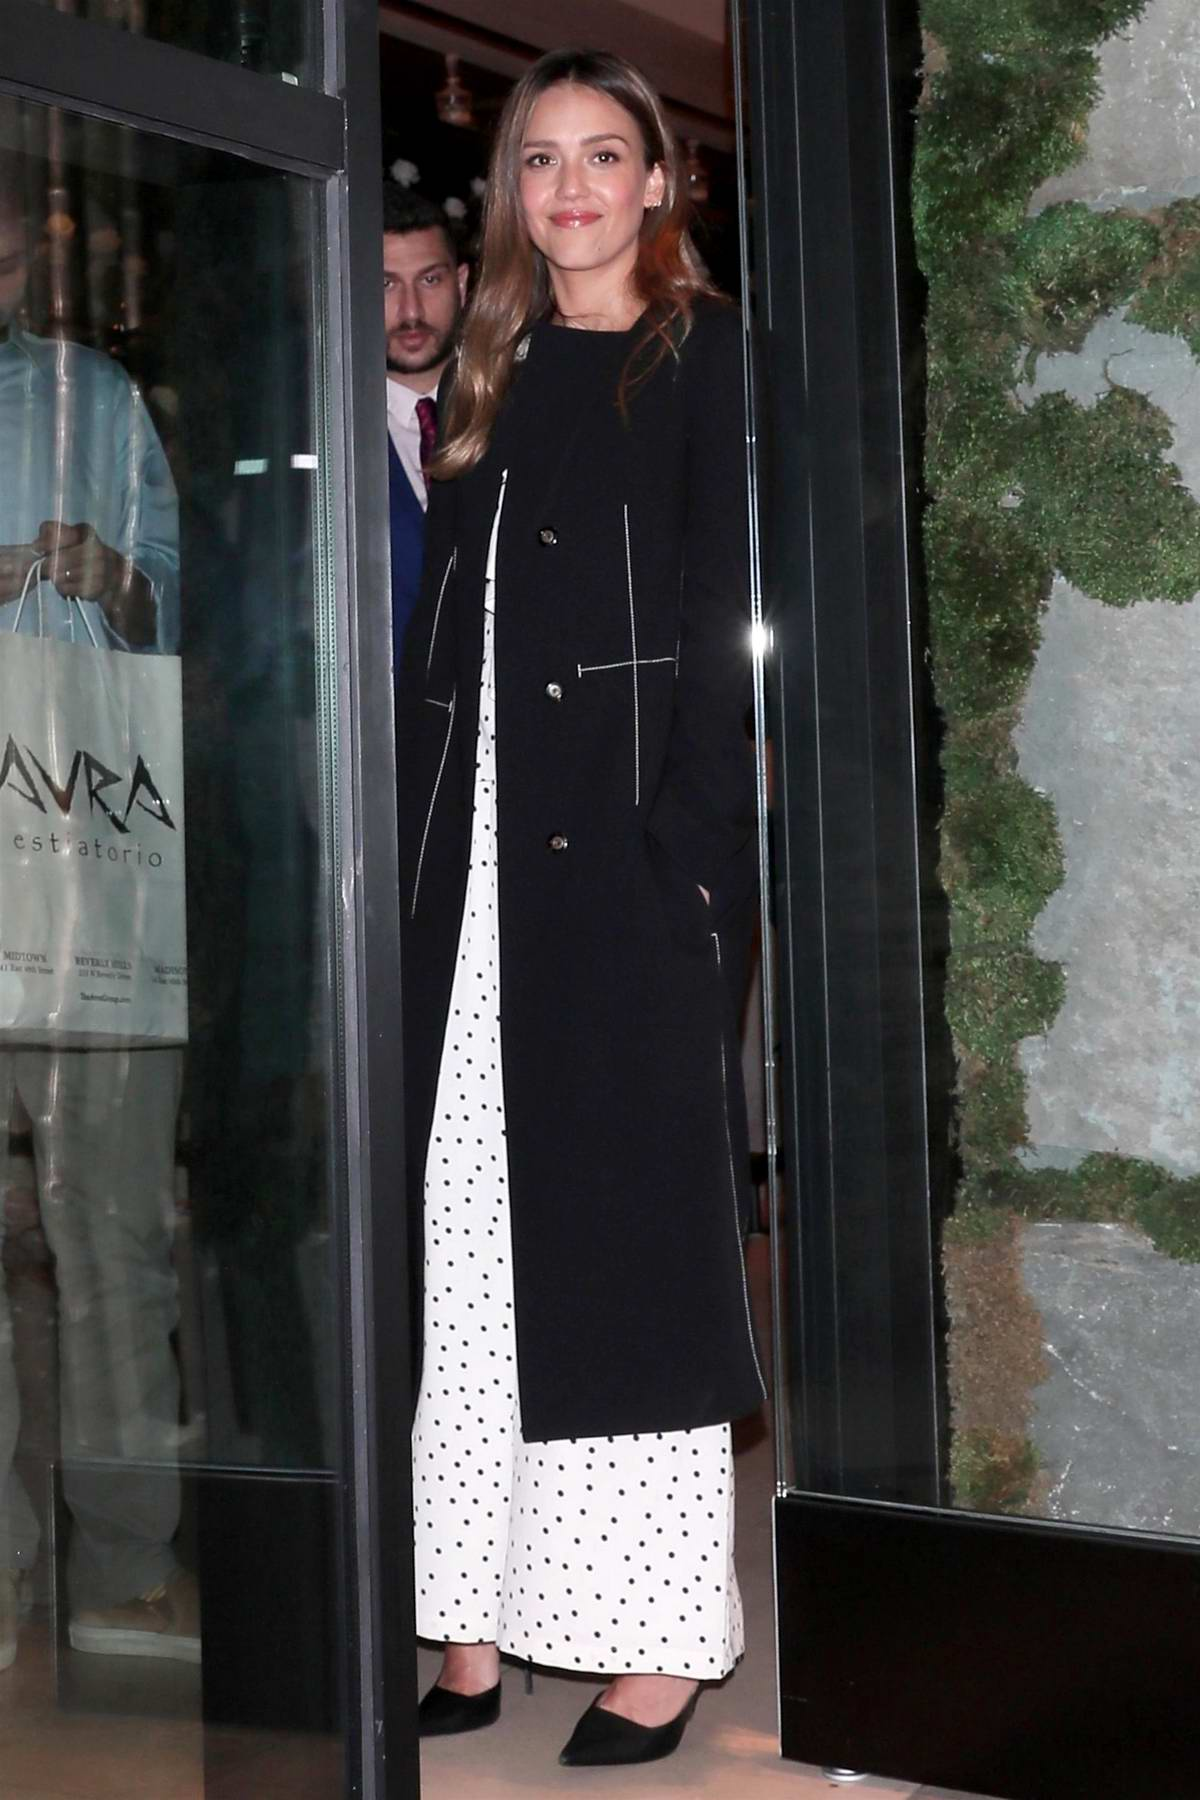 Jessica Alba spotted as she leaves Avra restaurant during a night out in Beverly Hills, Los Angeles